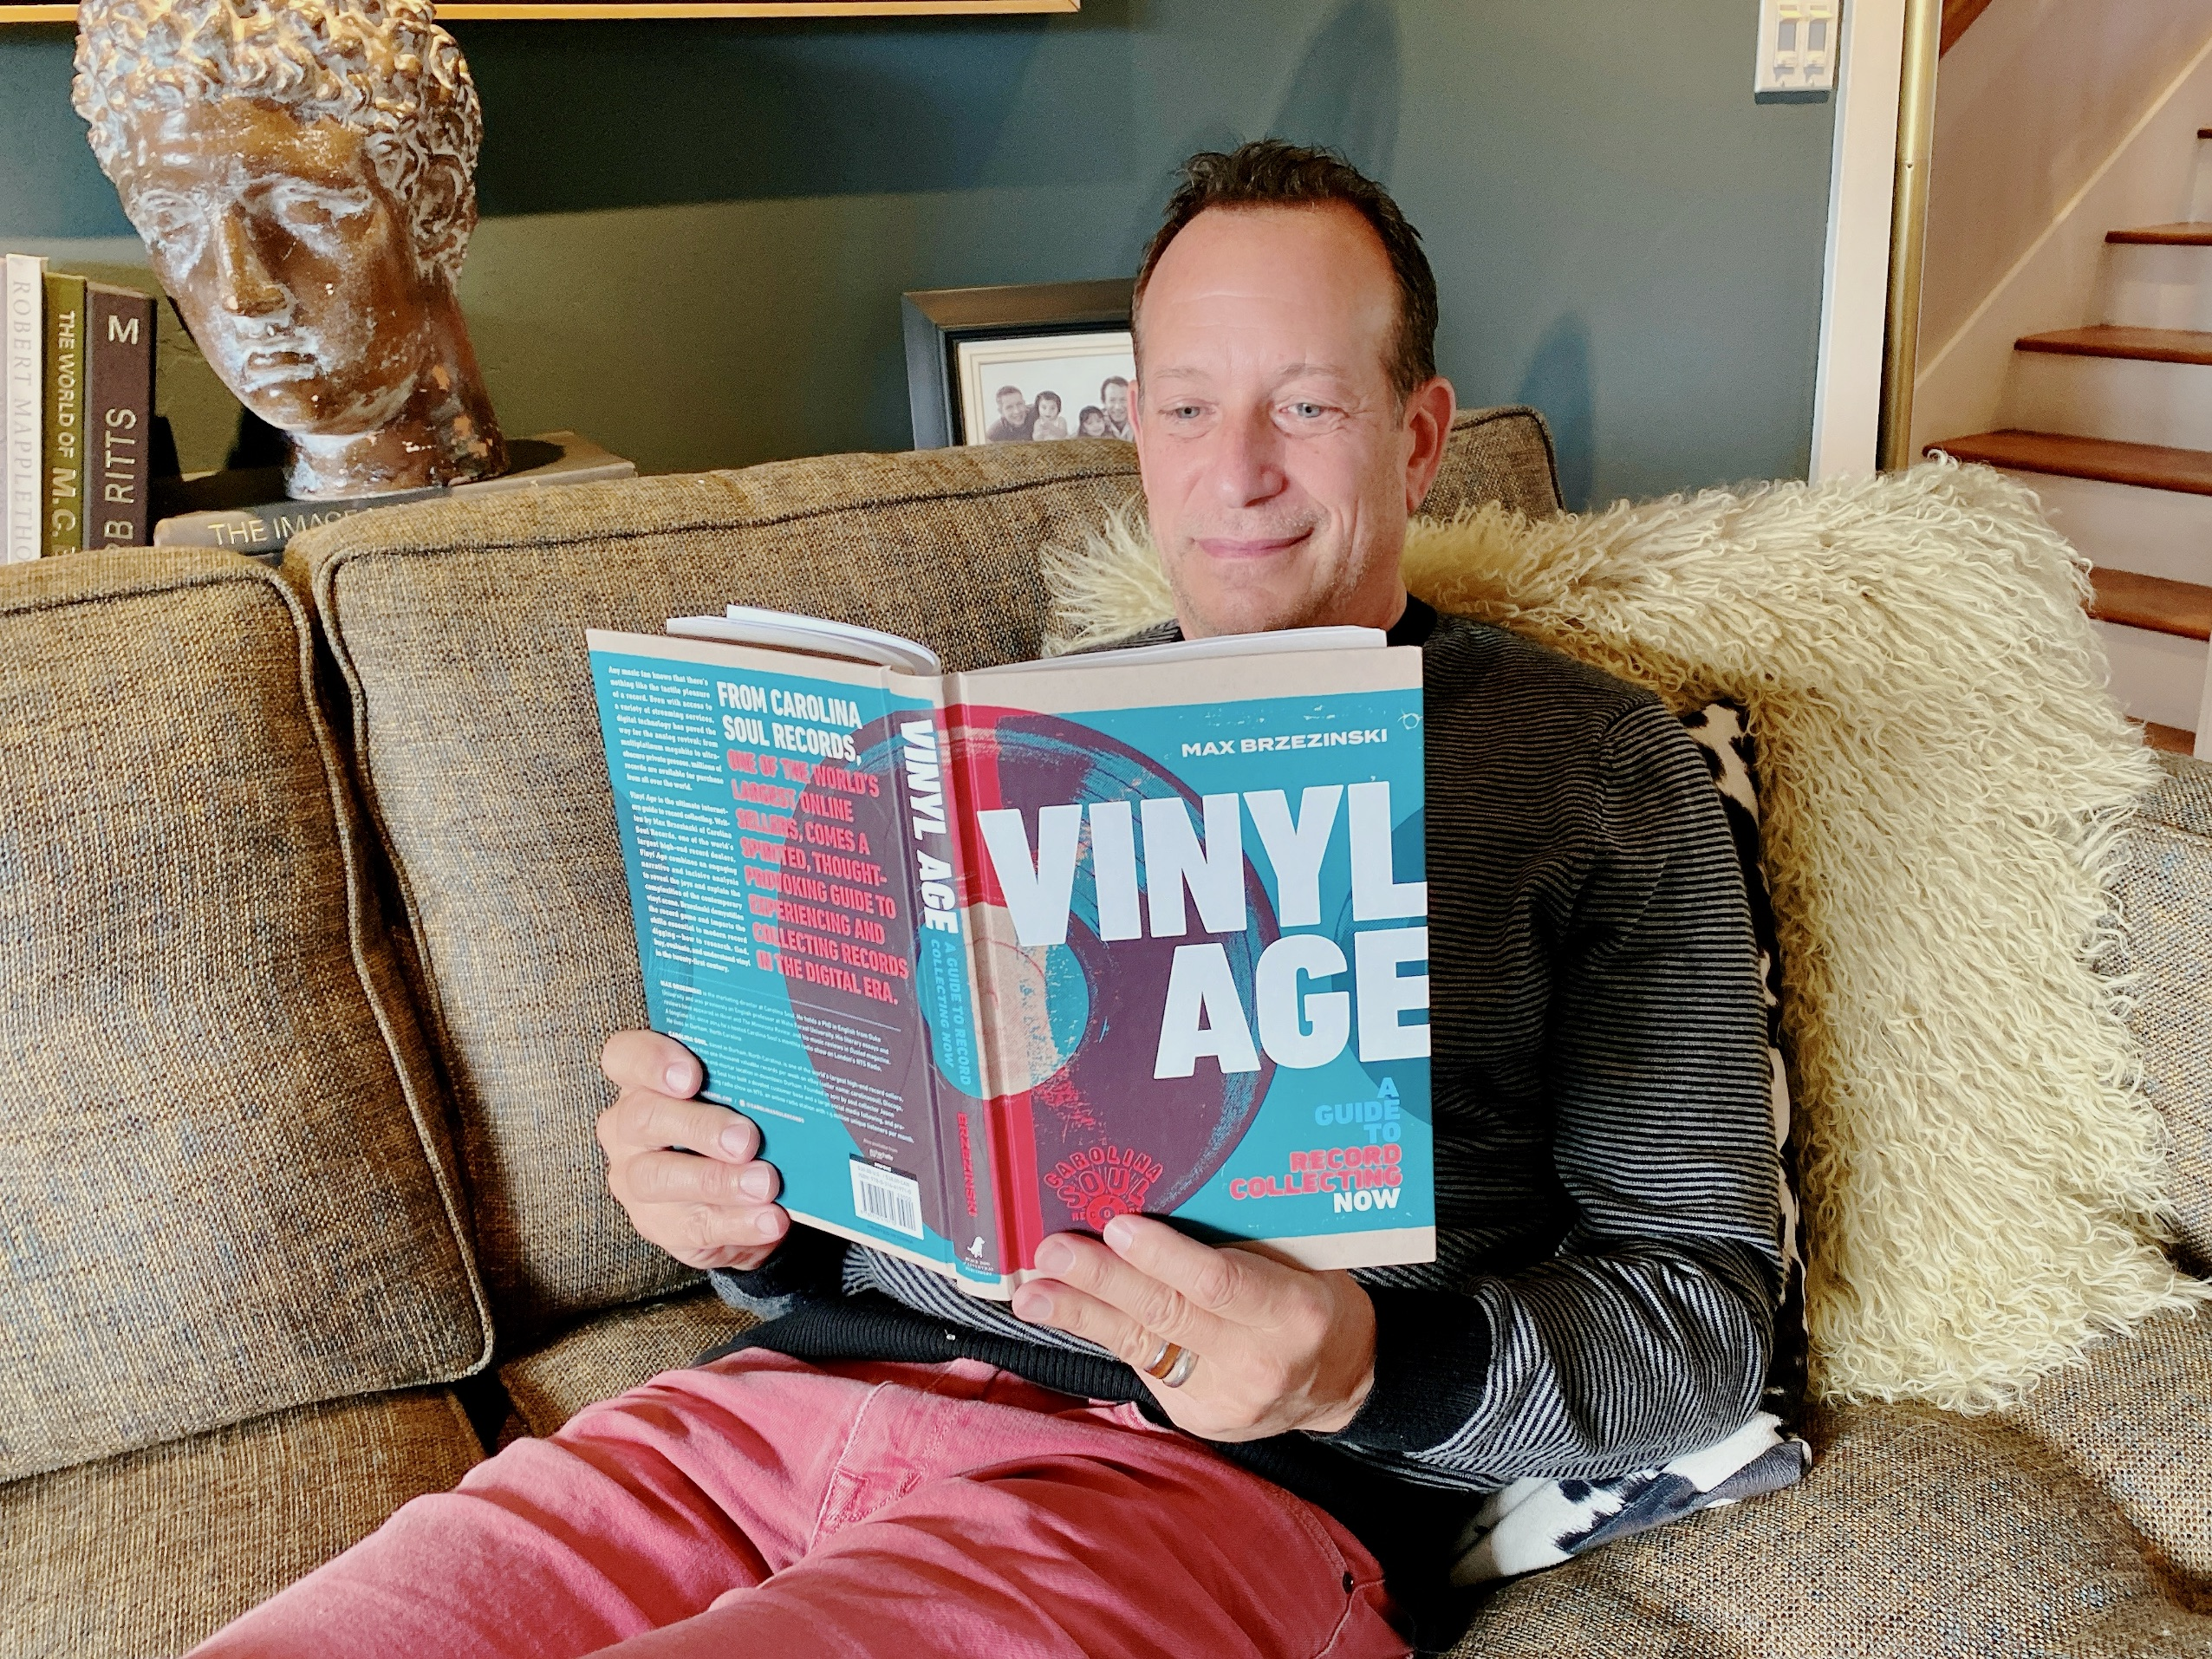 man on couch reading Vinyl Age: A Guide to Record Collecting Now by Max Brzezinski and Carolina Soul